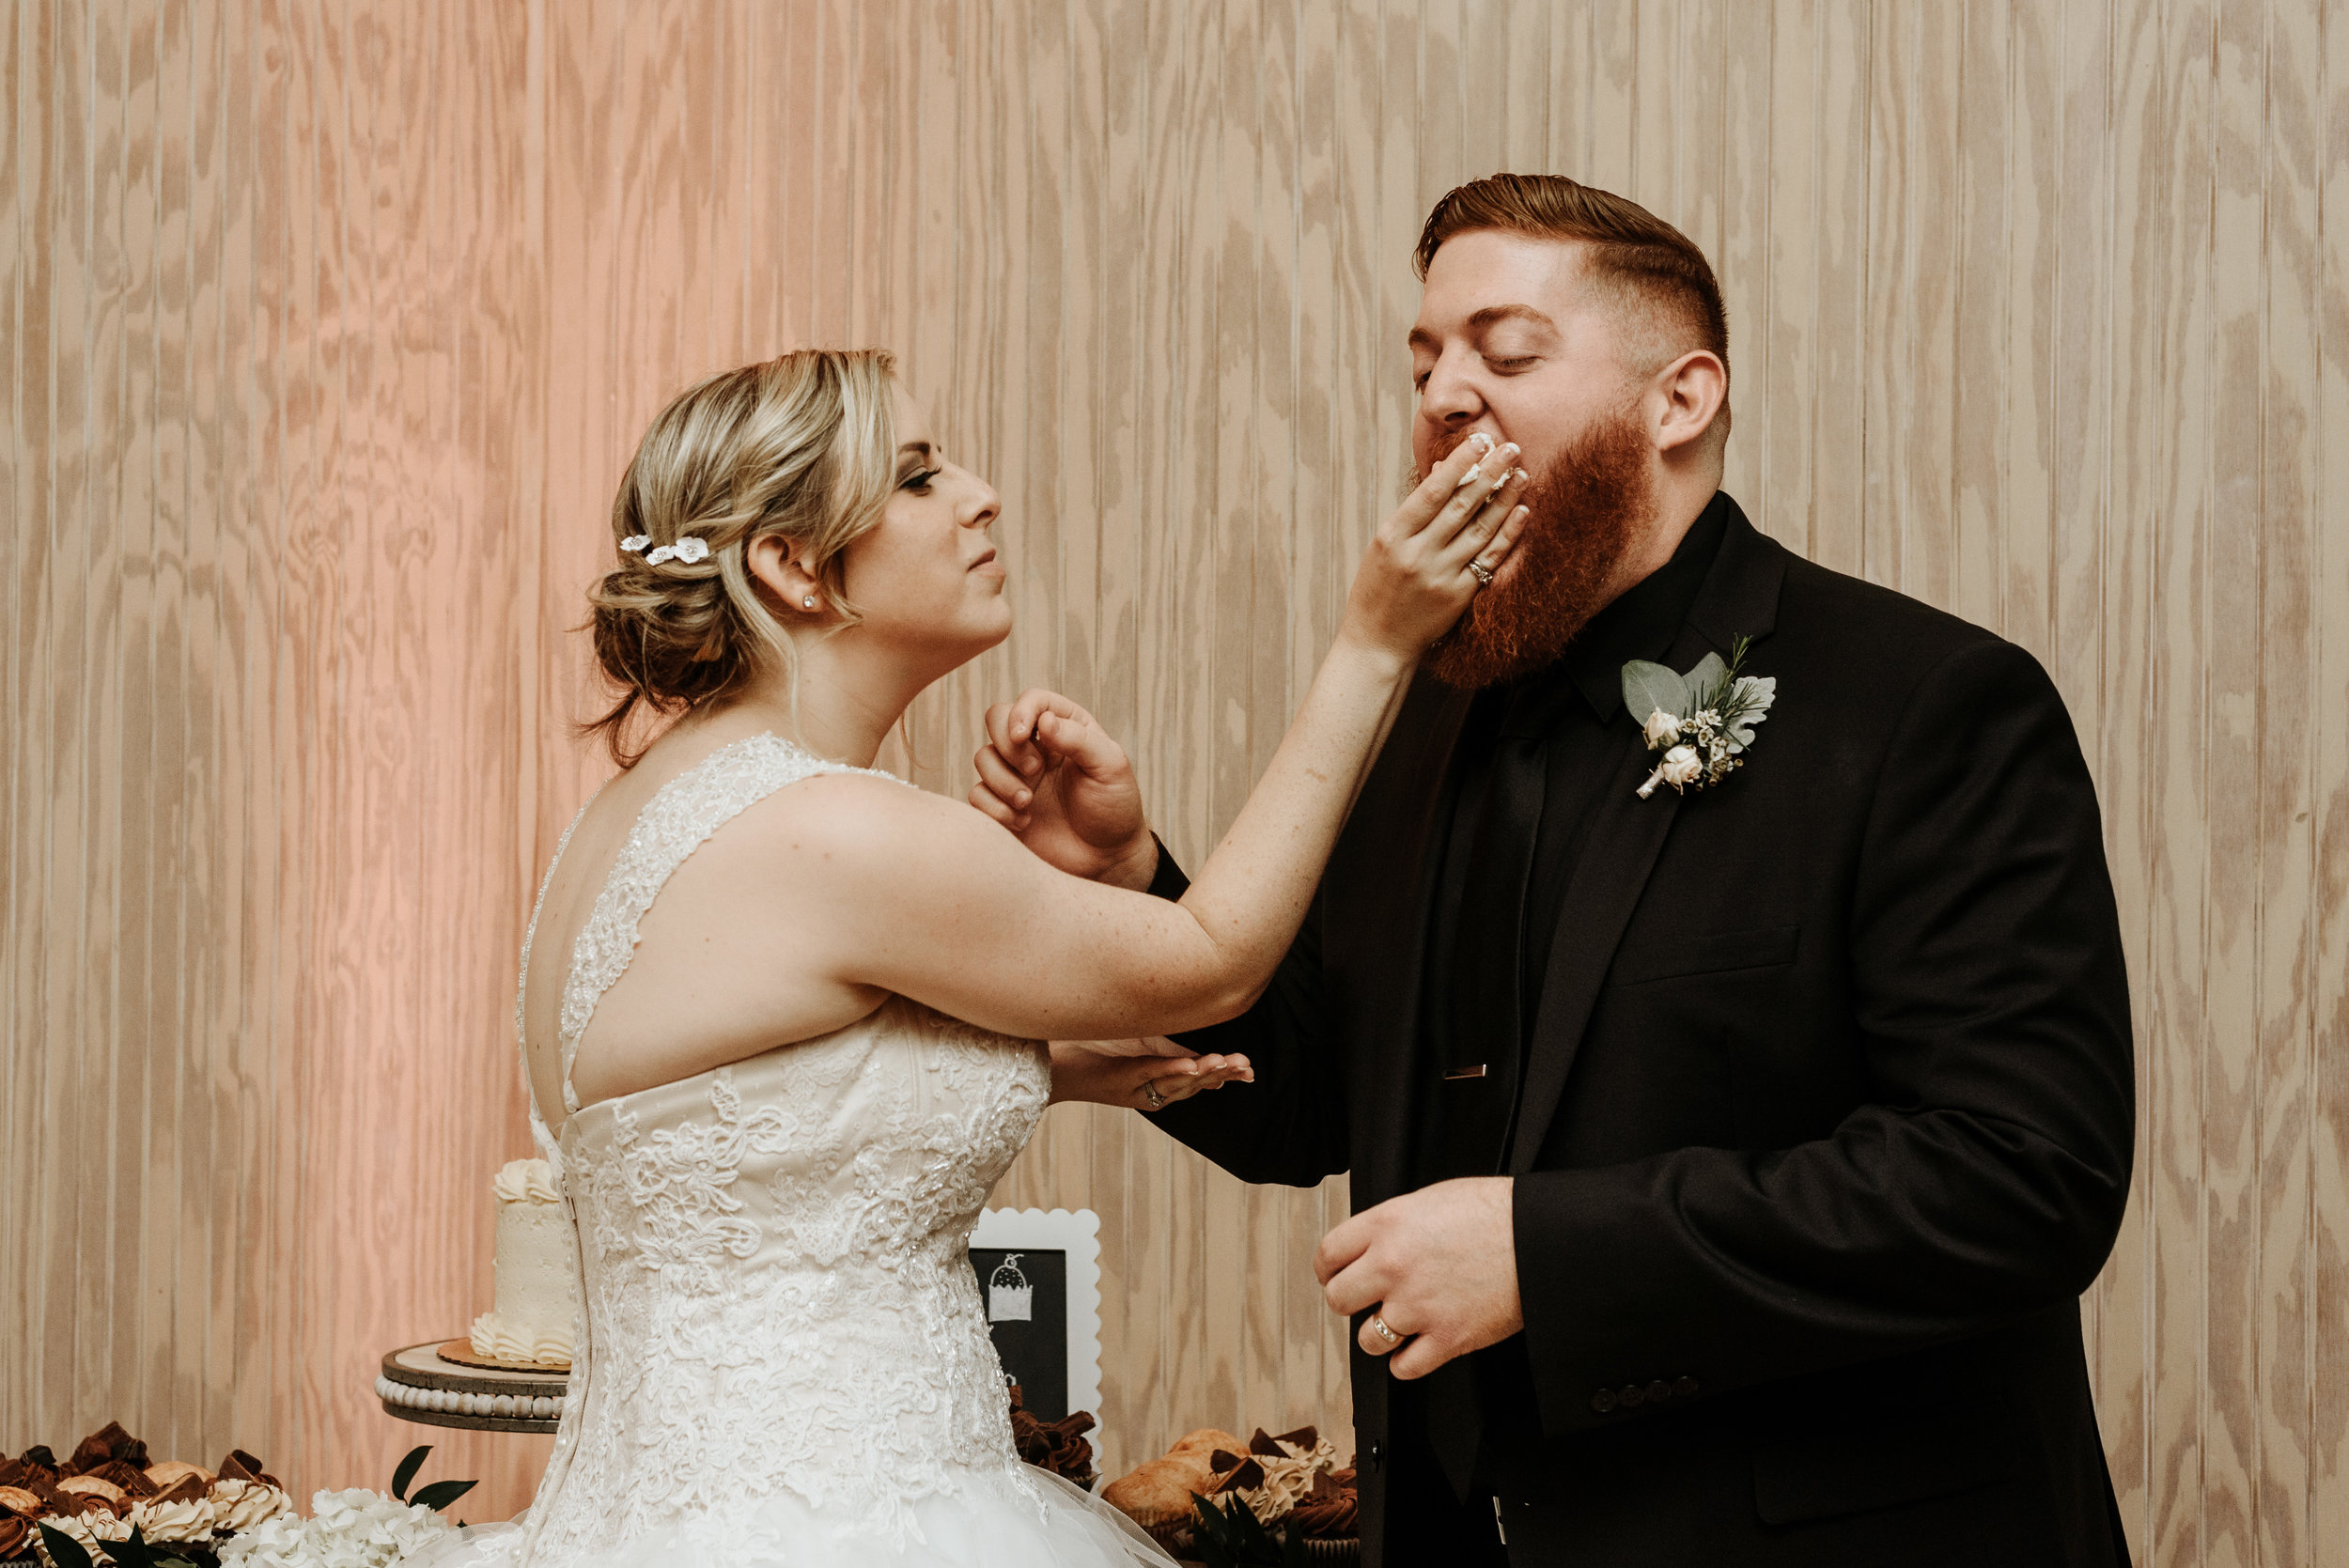 Lauren-Bobby-Wedding-Previews-7819.jpg